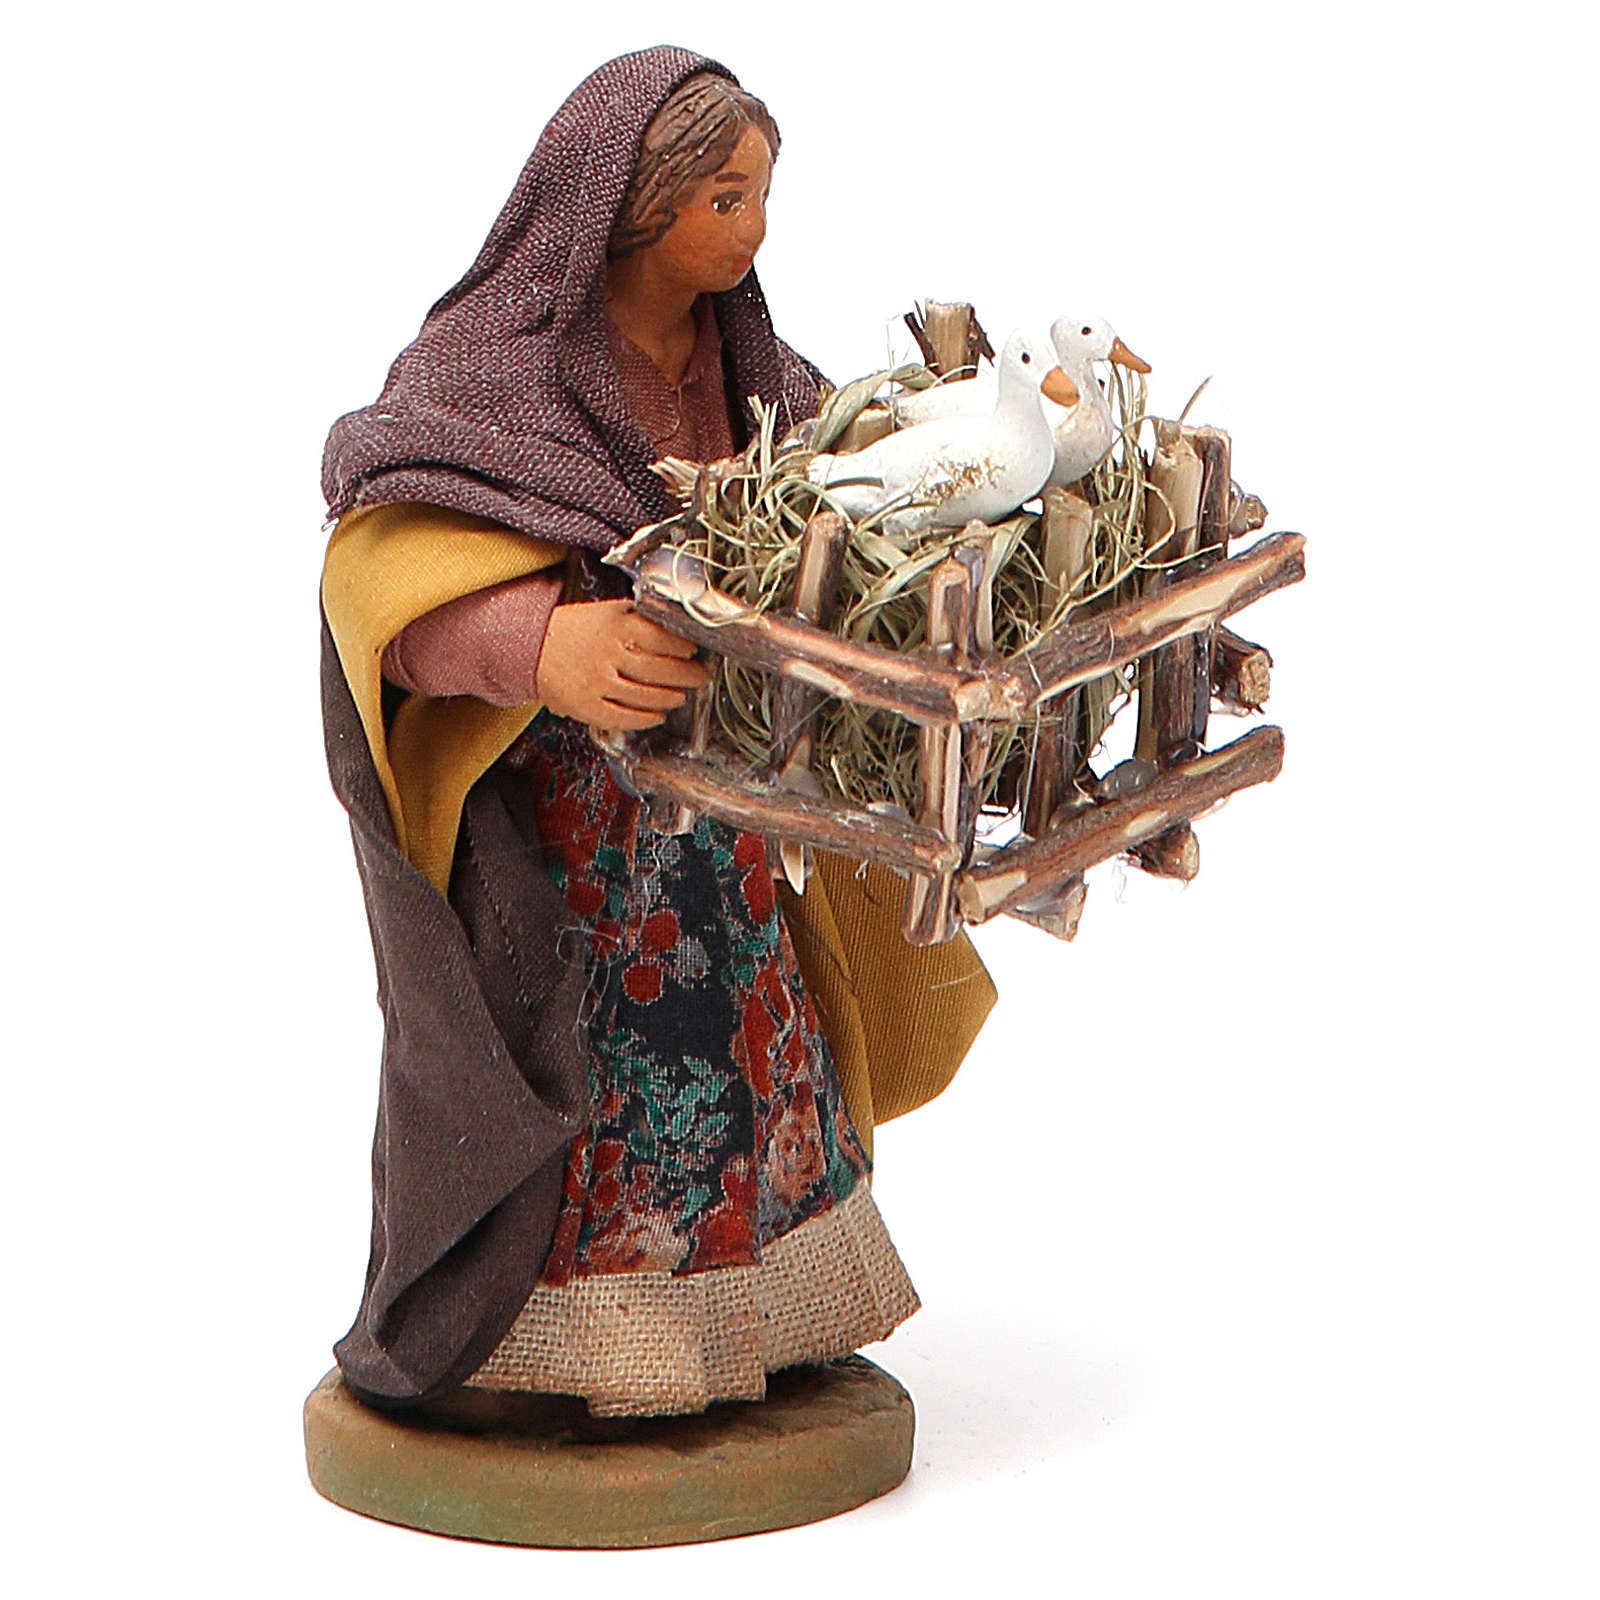 Woman with cages holding two ducks, Neapolitan nativity figurine 10cm 4